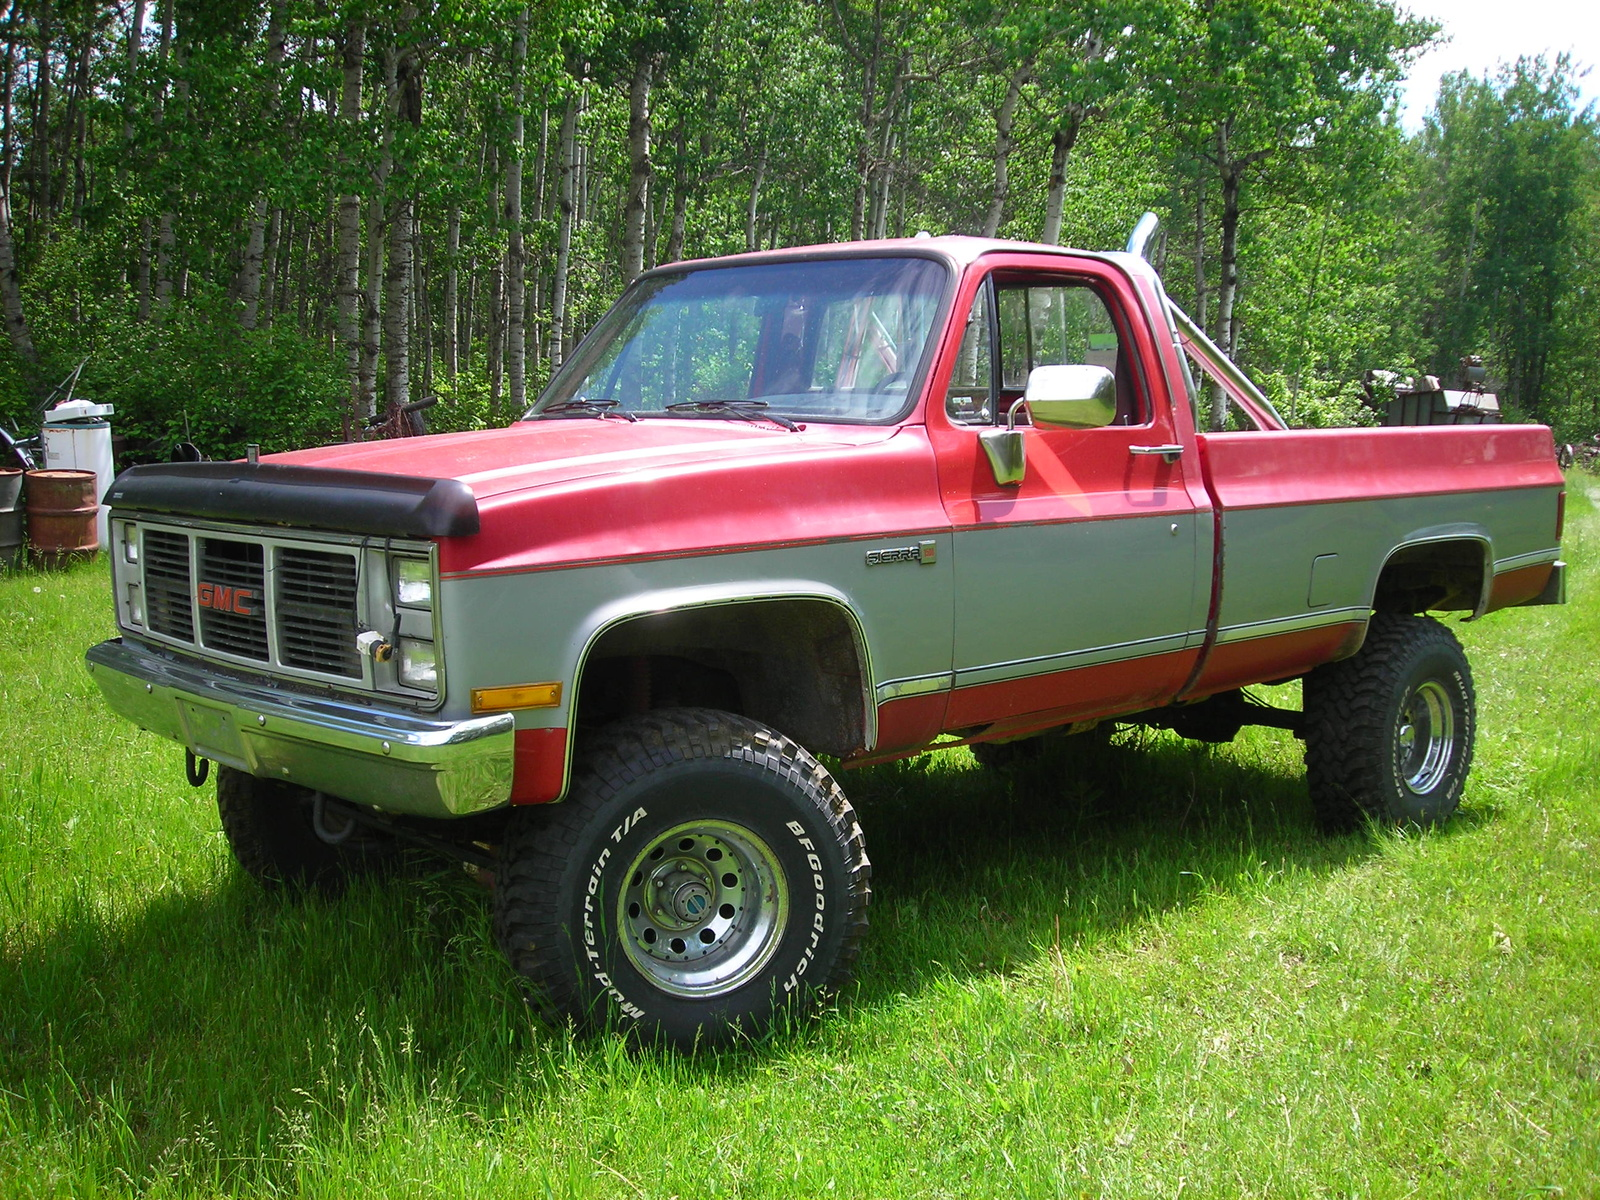 1987 gmc sierra picture exterior for G stone motors middlebury vermont